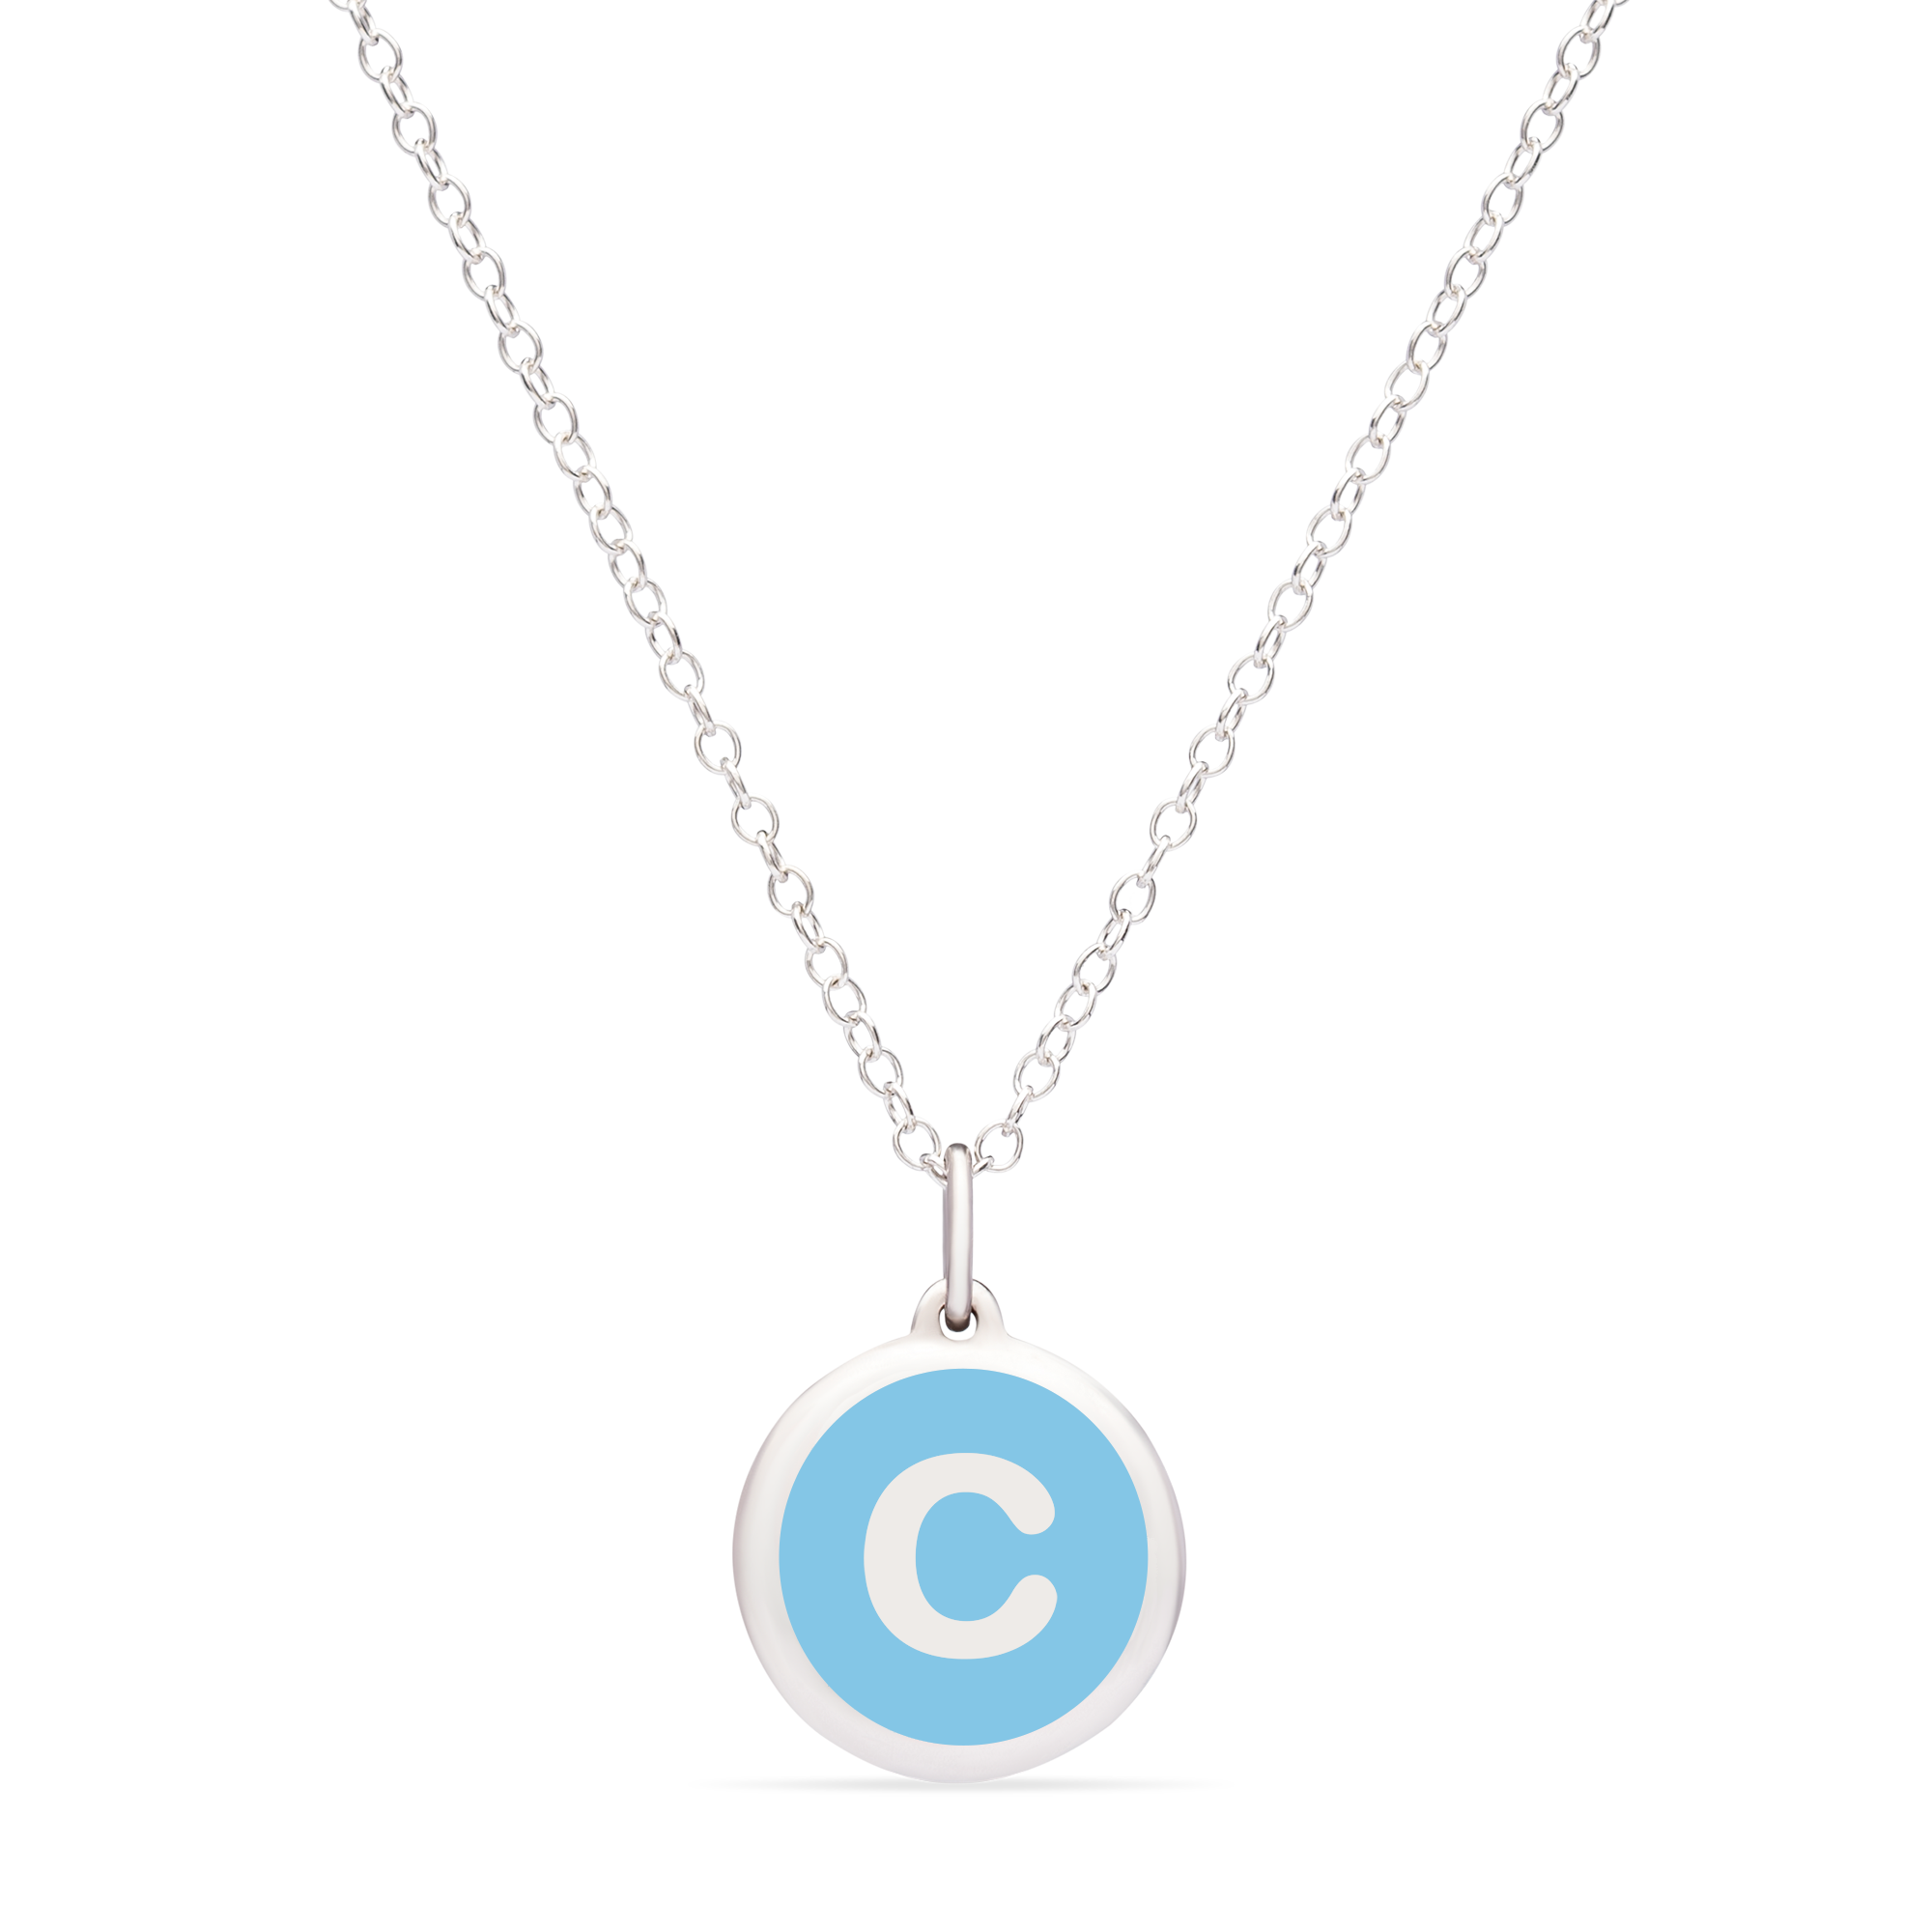 MINI INITIAL 'c' CHARM sterling silver with rhodium plate